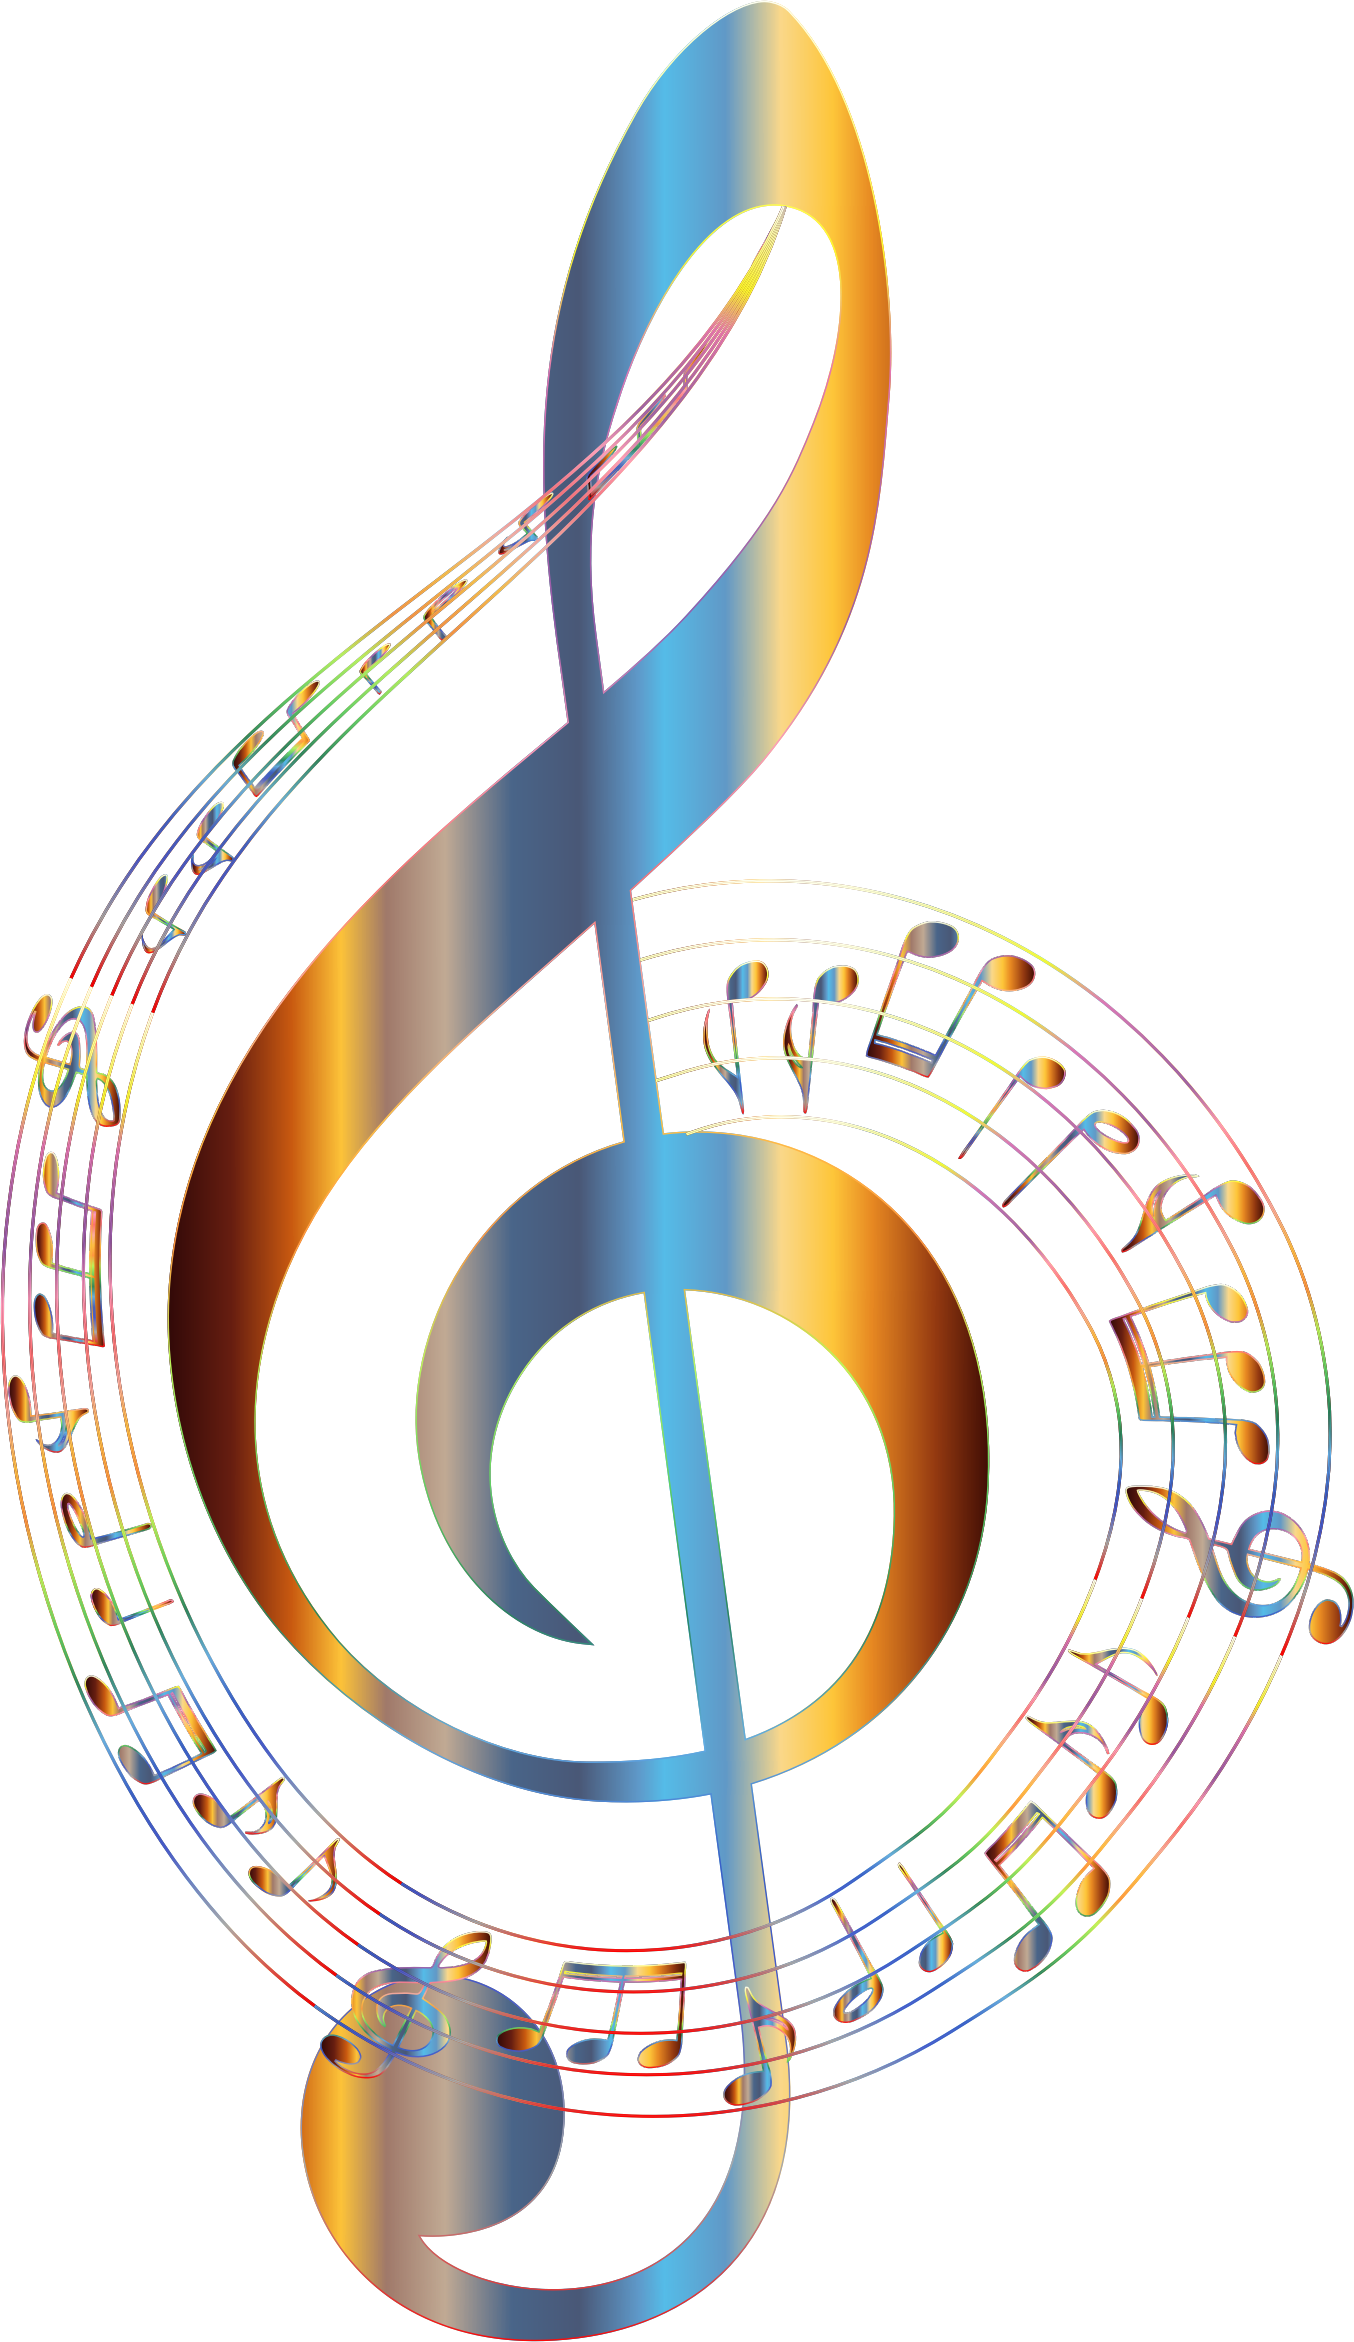 Coloring clipart music. Chromatic musical notes typography